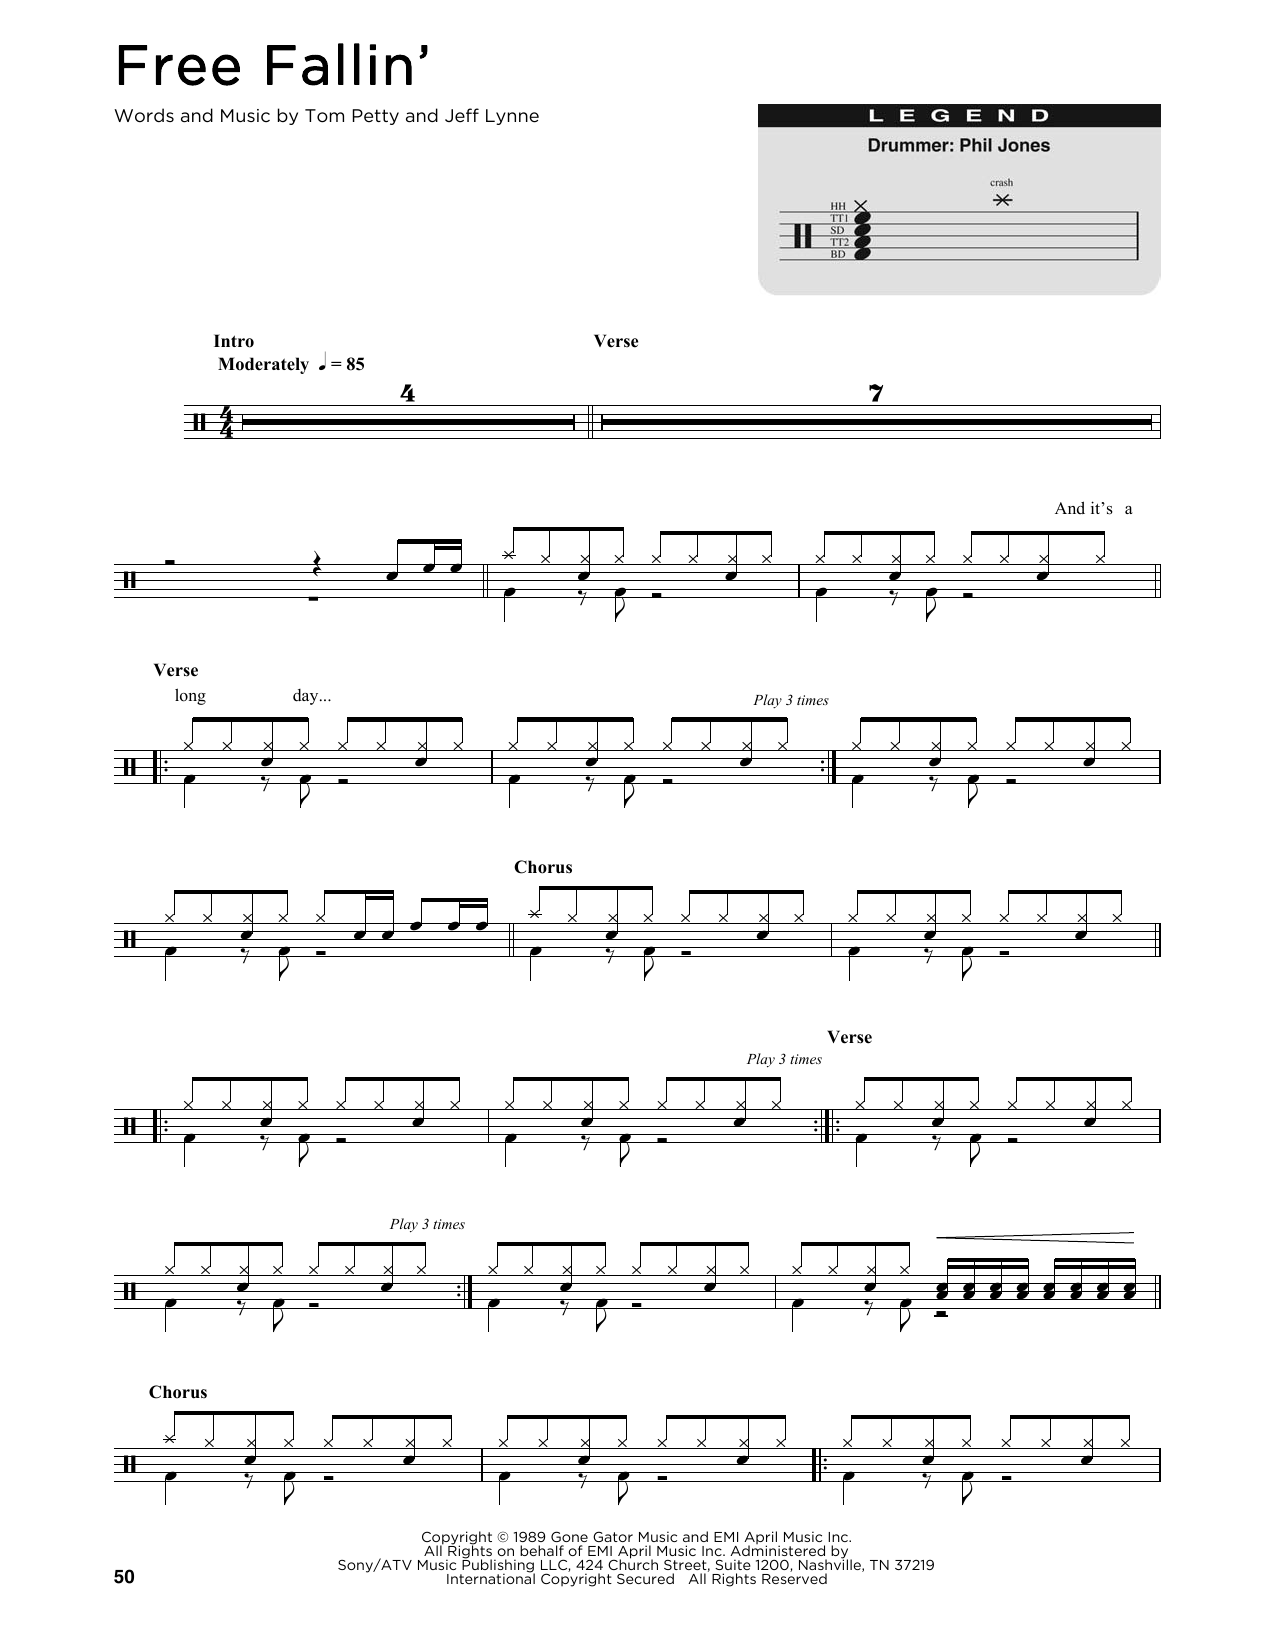 Free Fallin' (Drums Transcription)